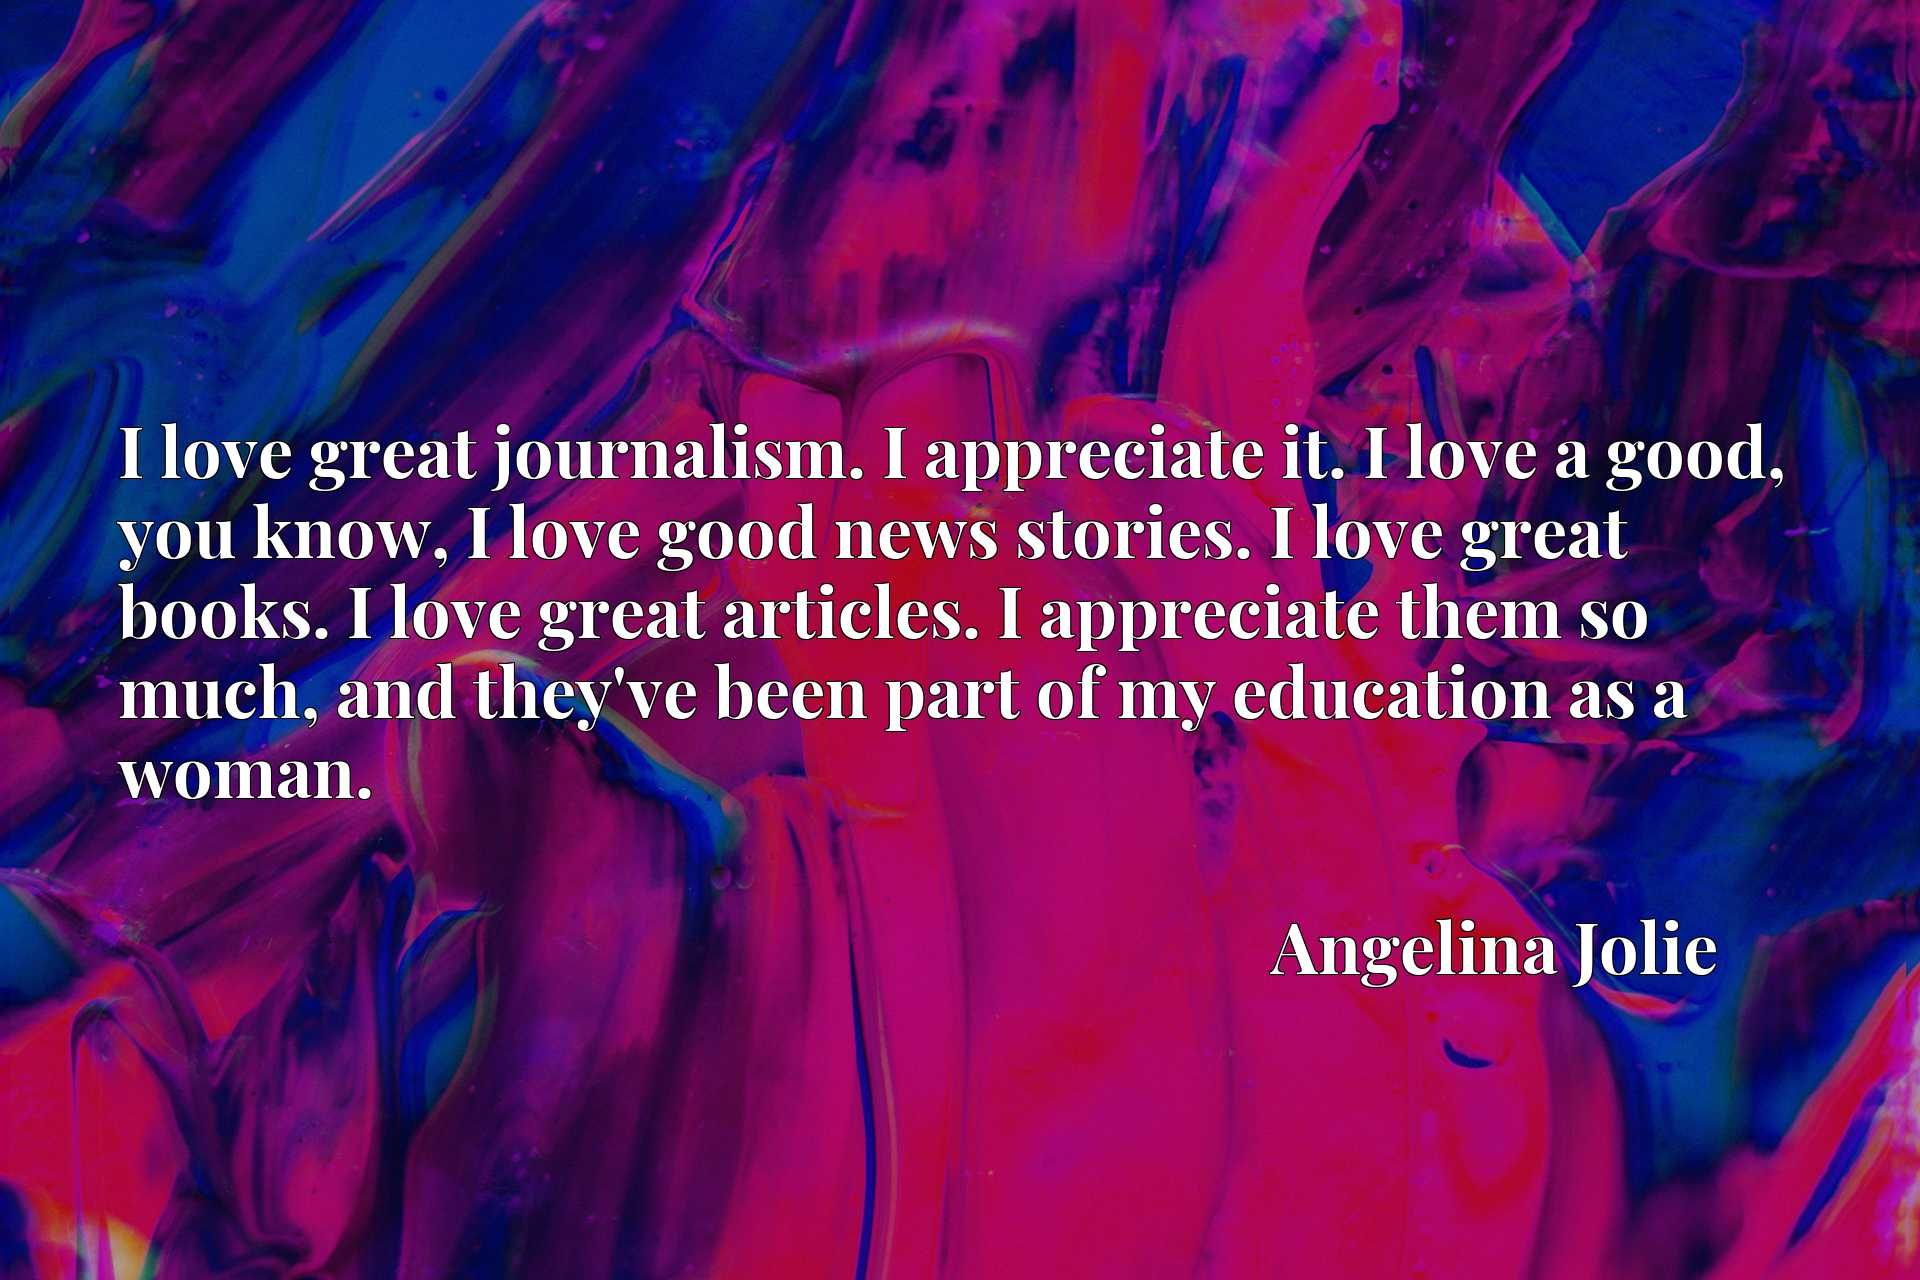 I love great journalism. I appreciate it. I love a good, you know, I love good news stories. I love great books. I love great articles. I appreciate them so much, and they've been part of my education as a woman.